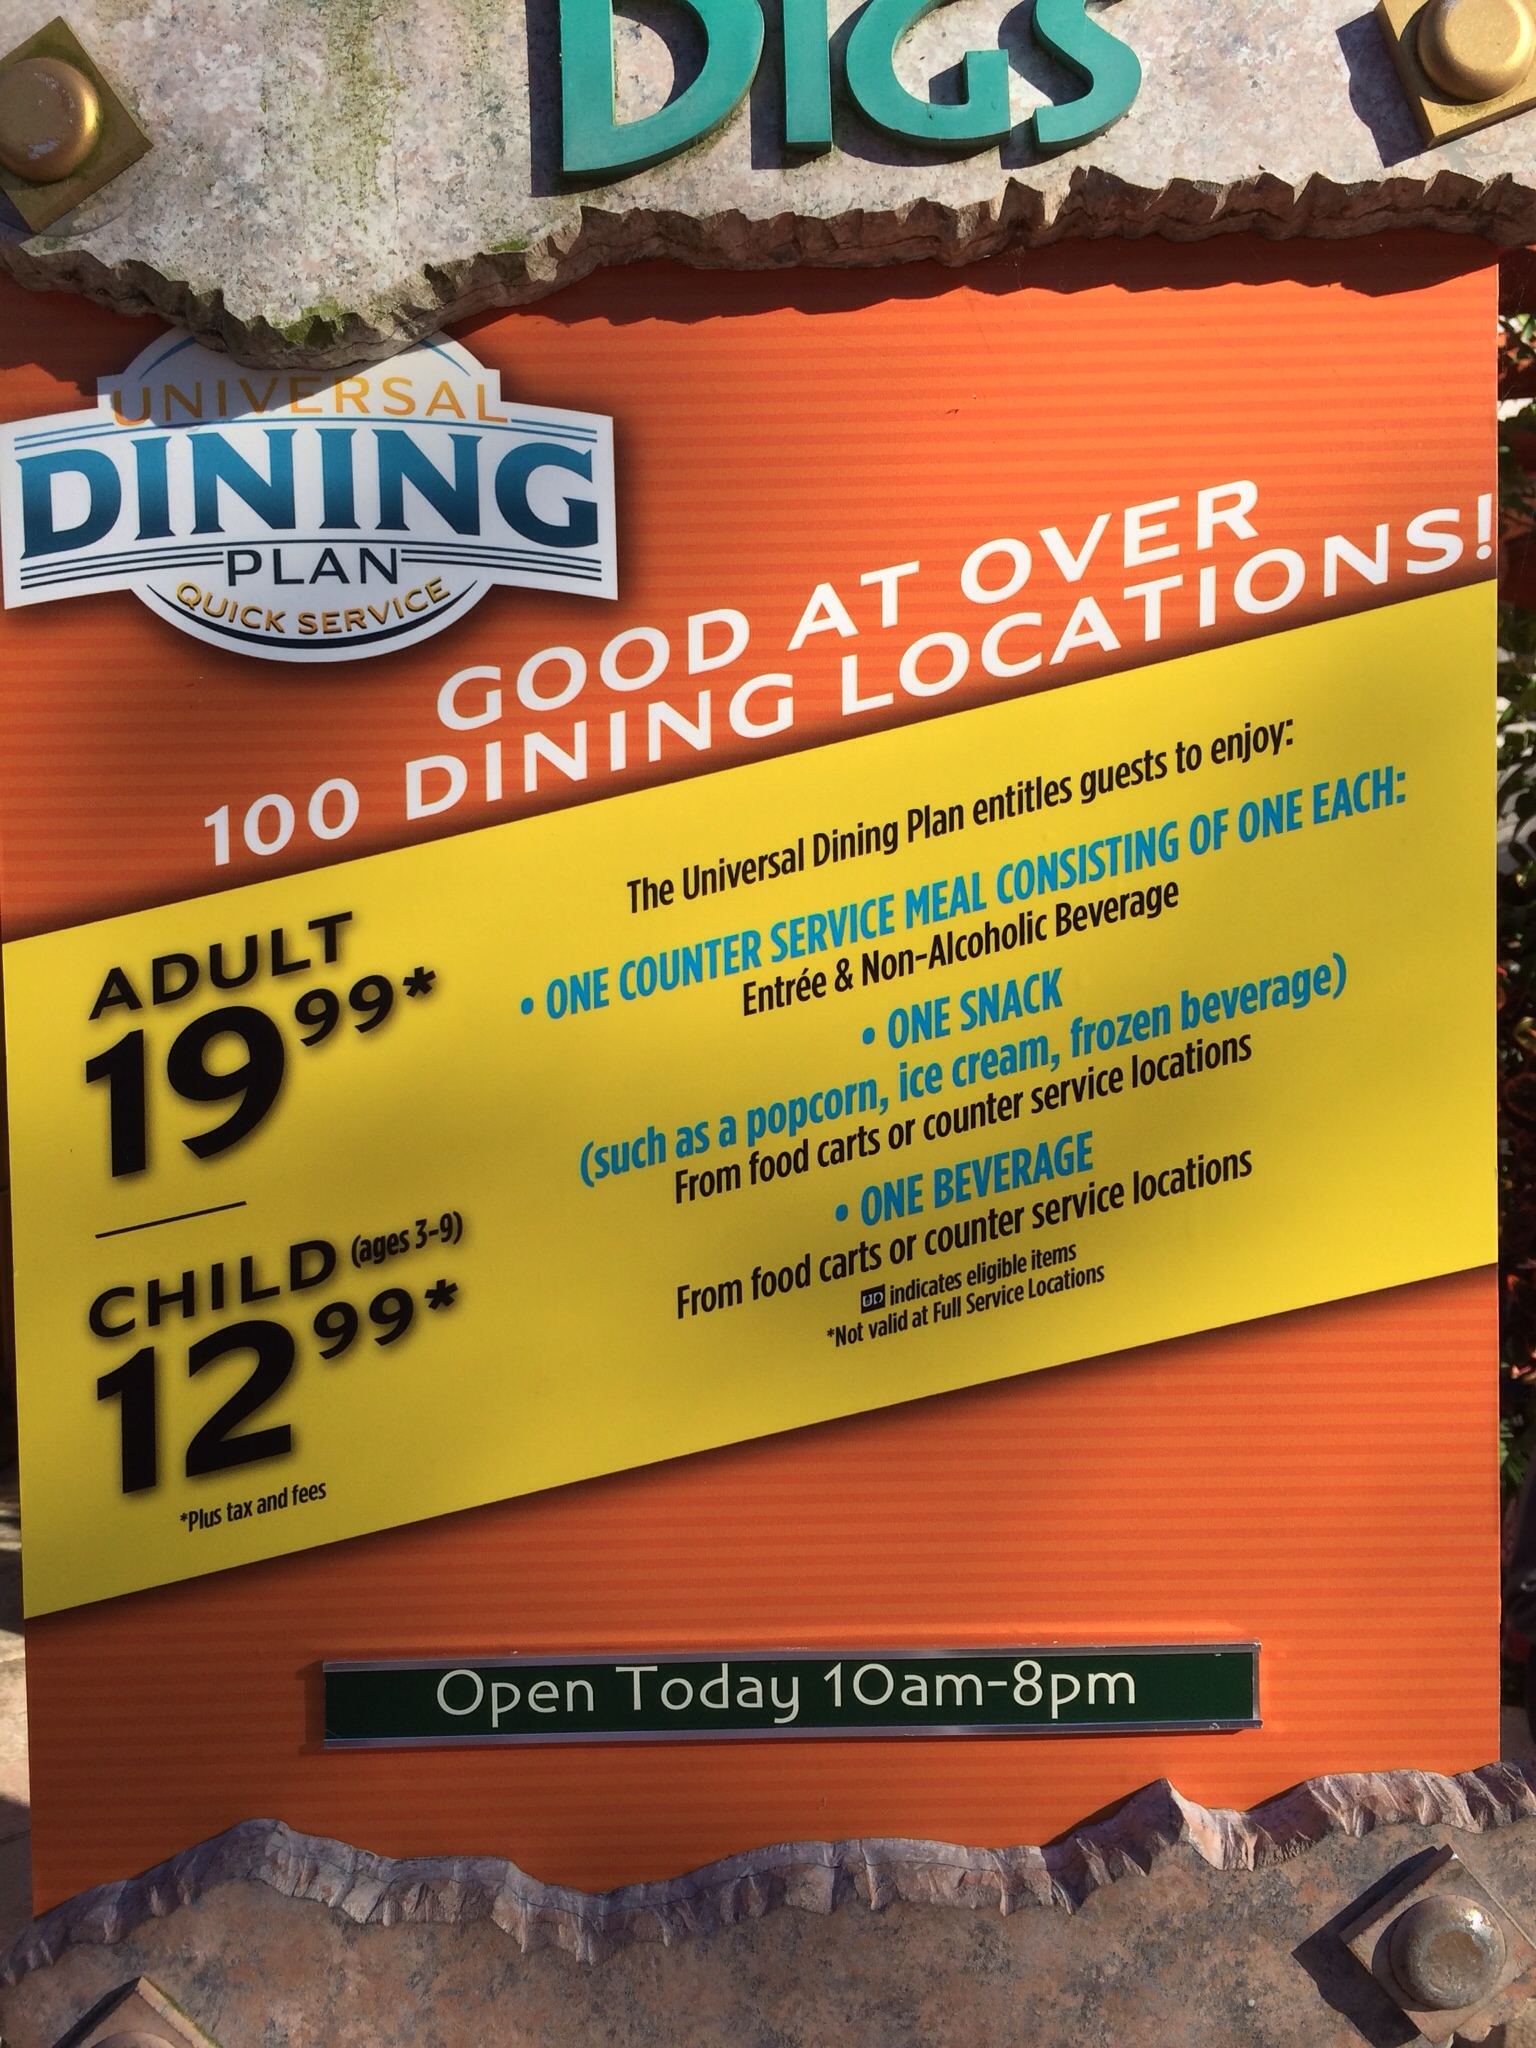 Universal Dining Plan price increase